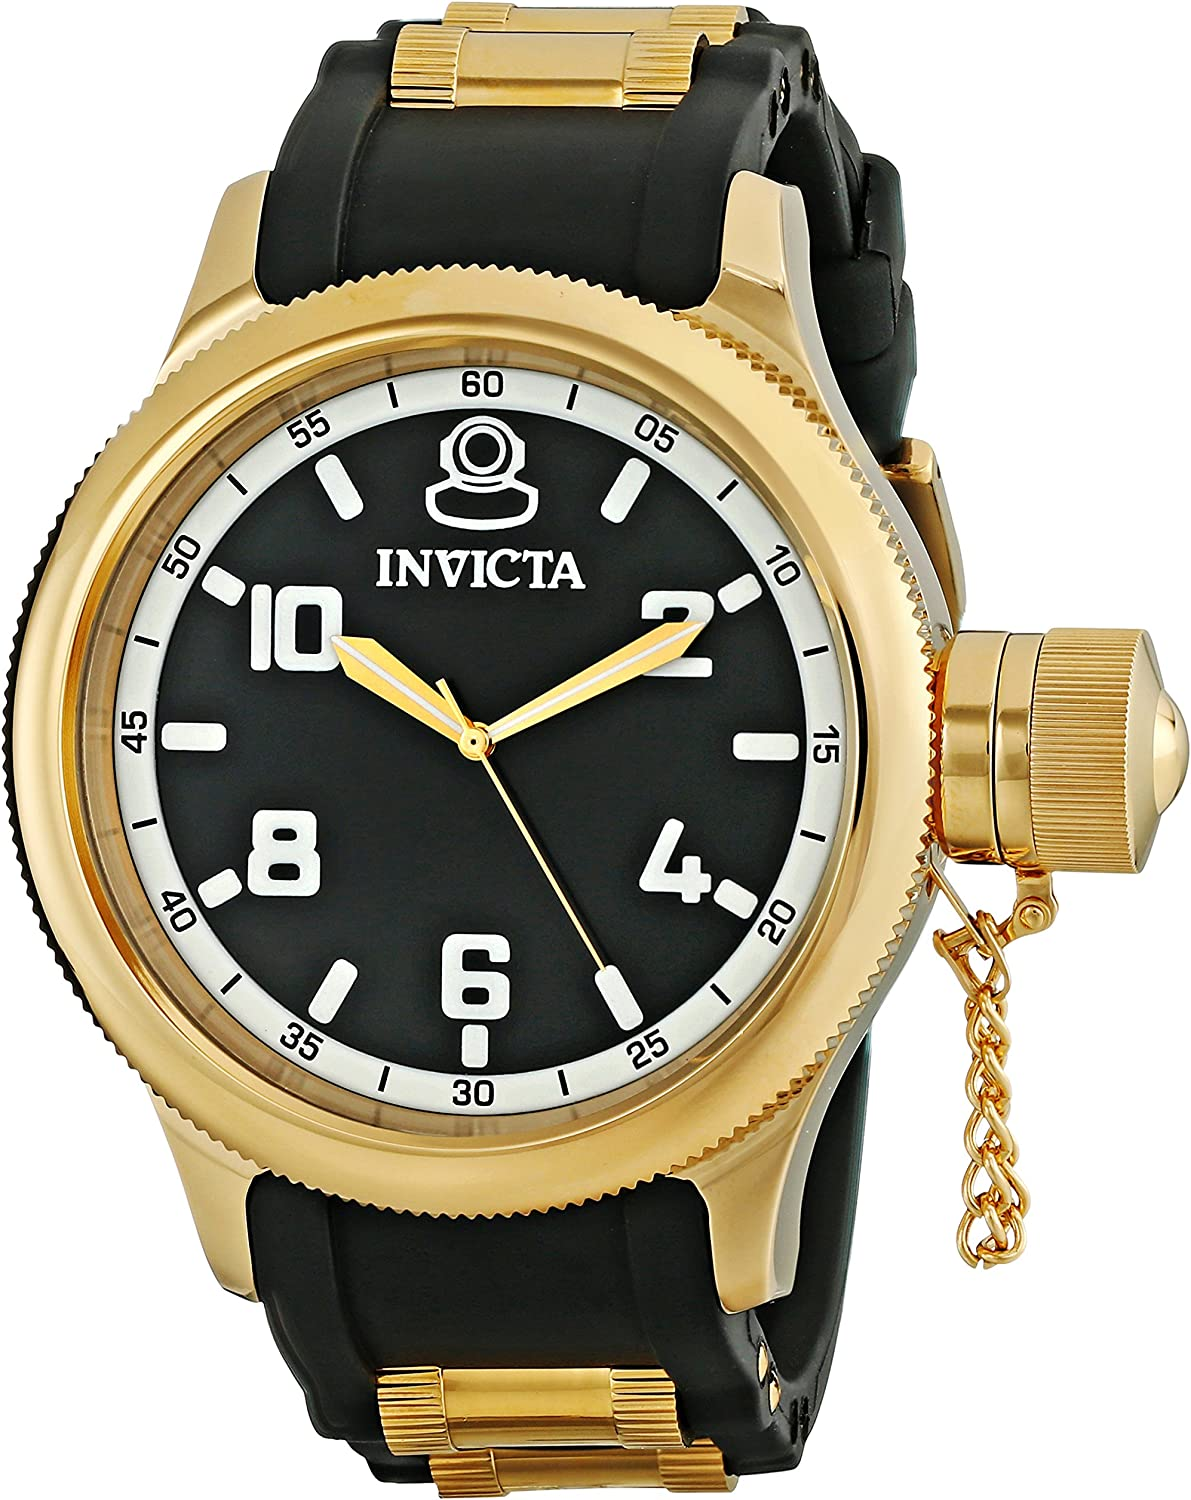 Invicta Men s Russian Diver 18k Black Gold Ion-Plated Stainless Steel Watch 1436